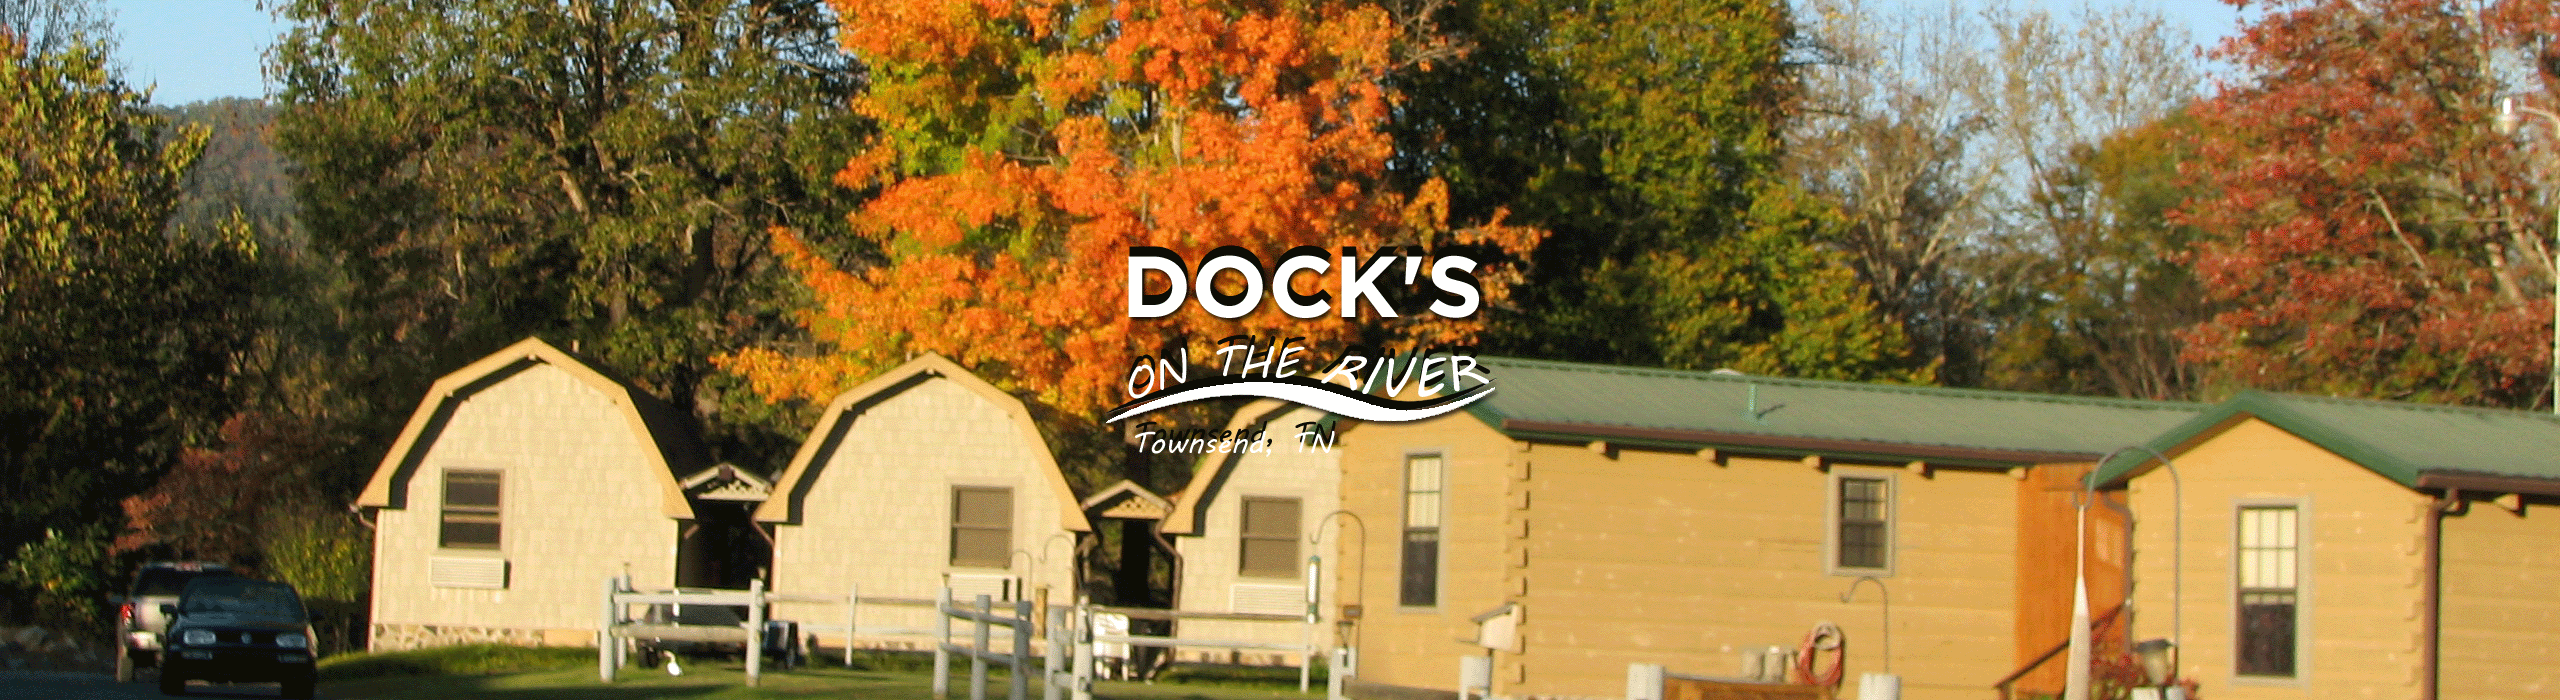 Dock's On The River Motel and Cabins Townsend TN